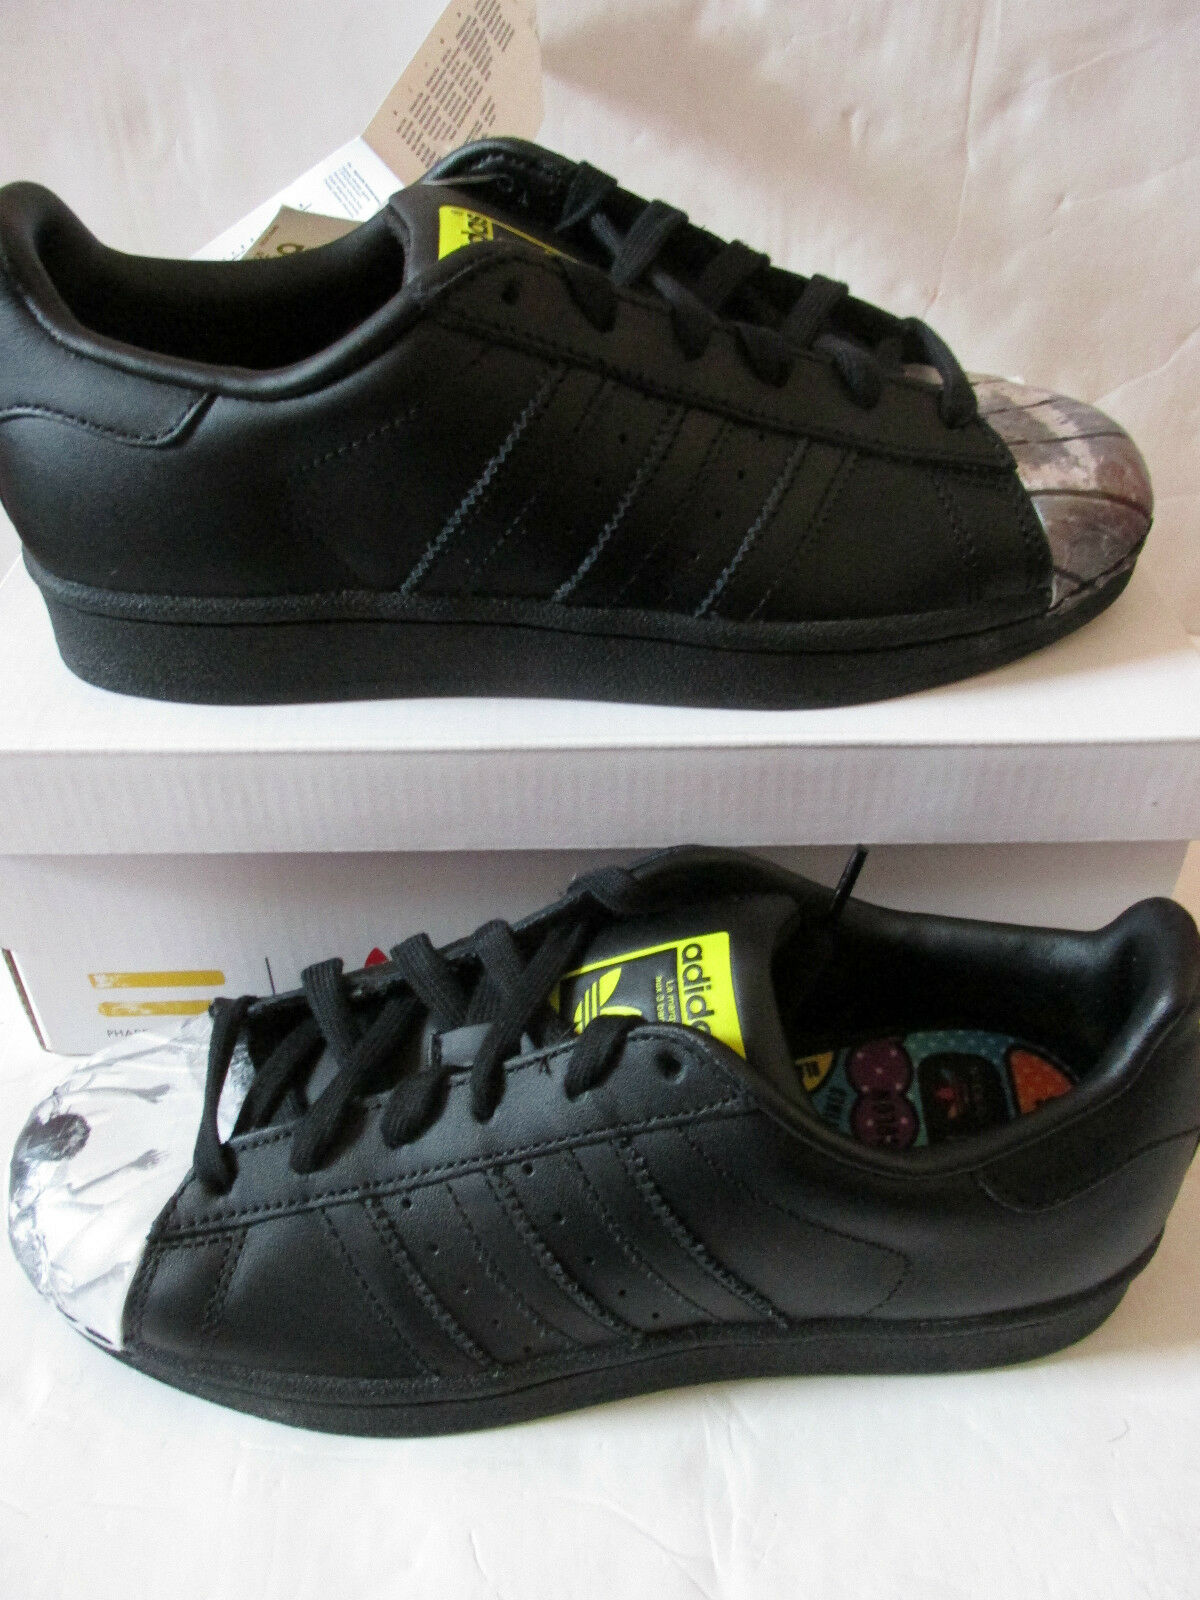 Adidas S83350 Originals Superstar Pharrell Supershell S83350 Adidas Zapatillas Hombre 2f3c71